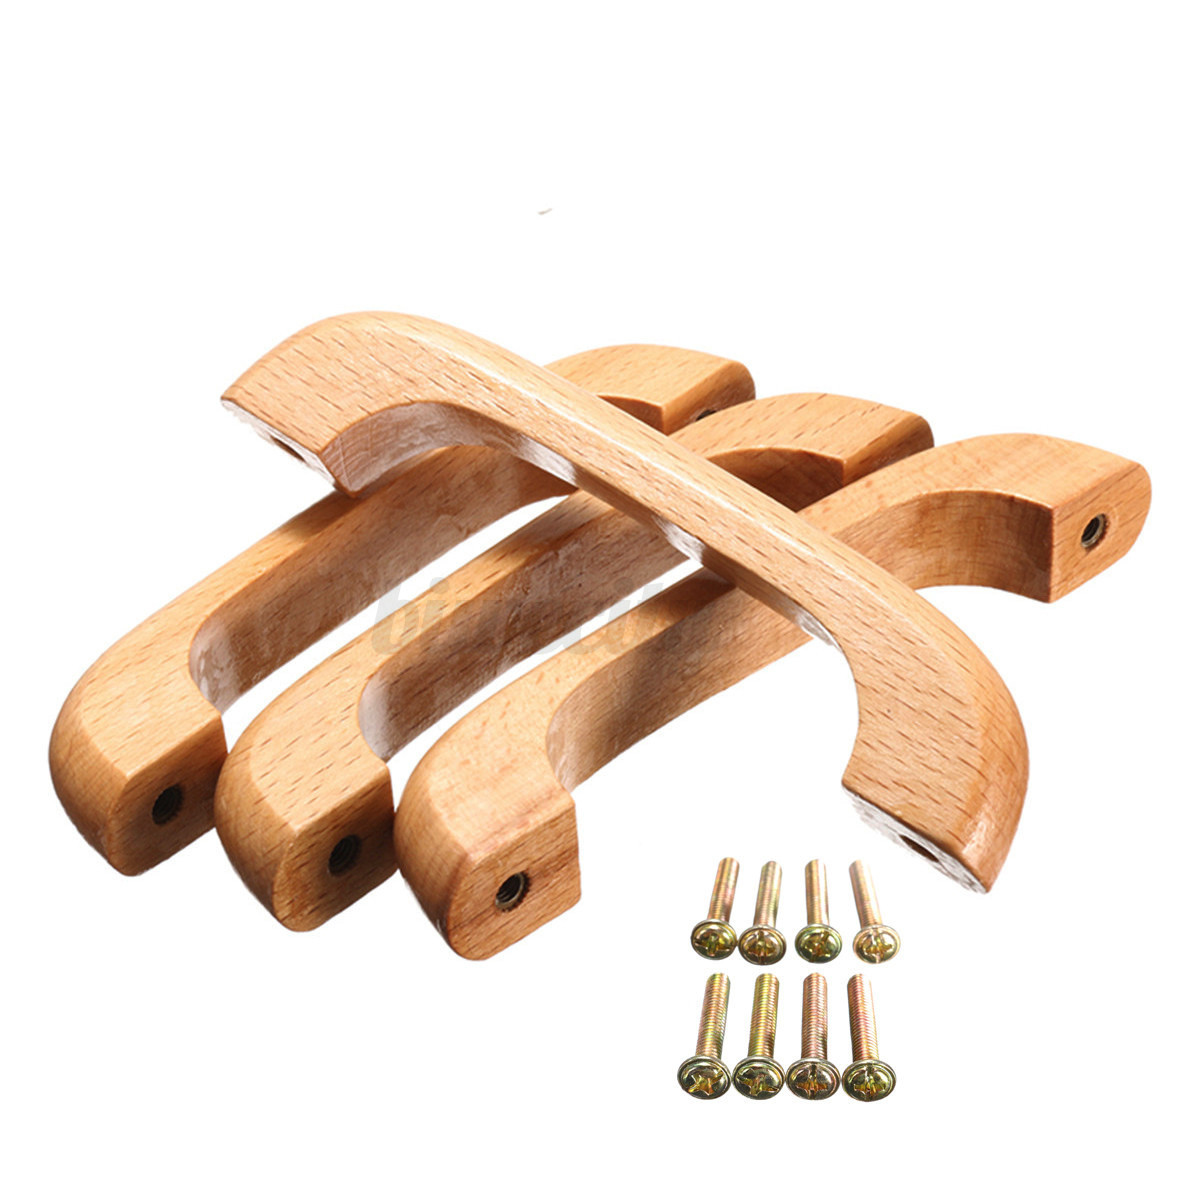 Wooden Furniture Hardware ~ Wooden varnish handles pulls for kitchen cabinet